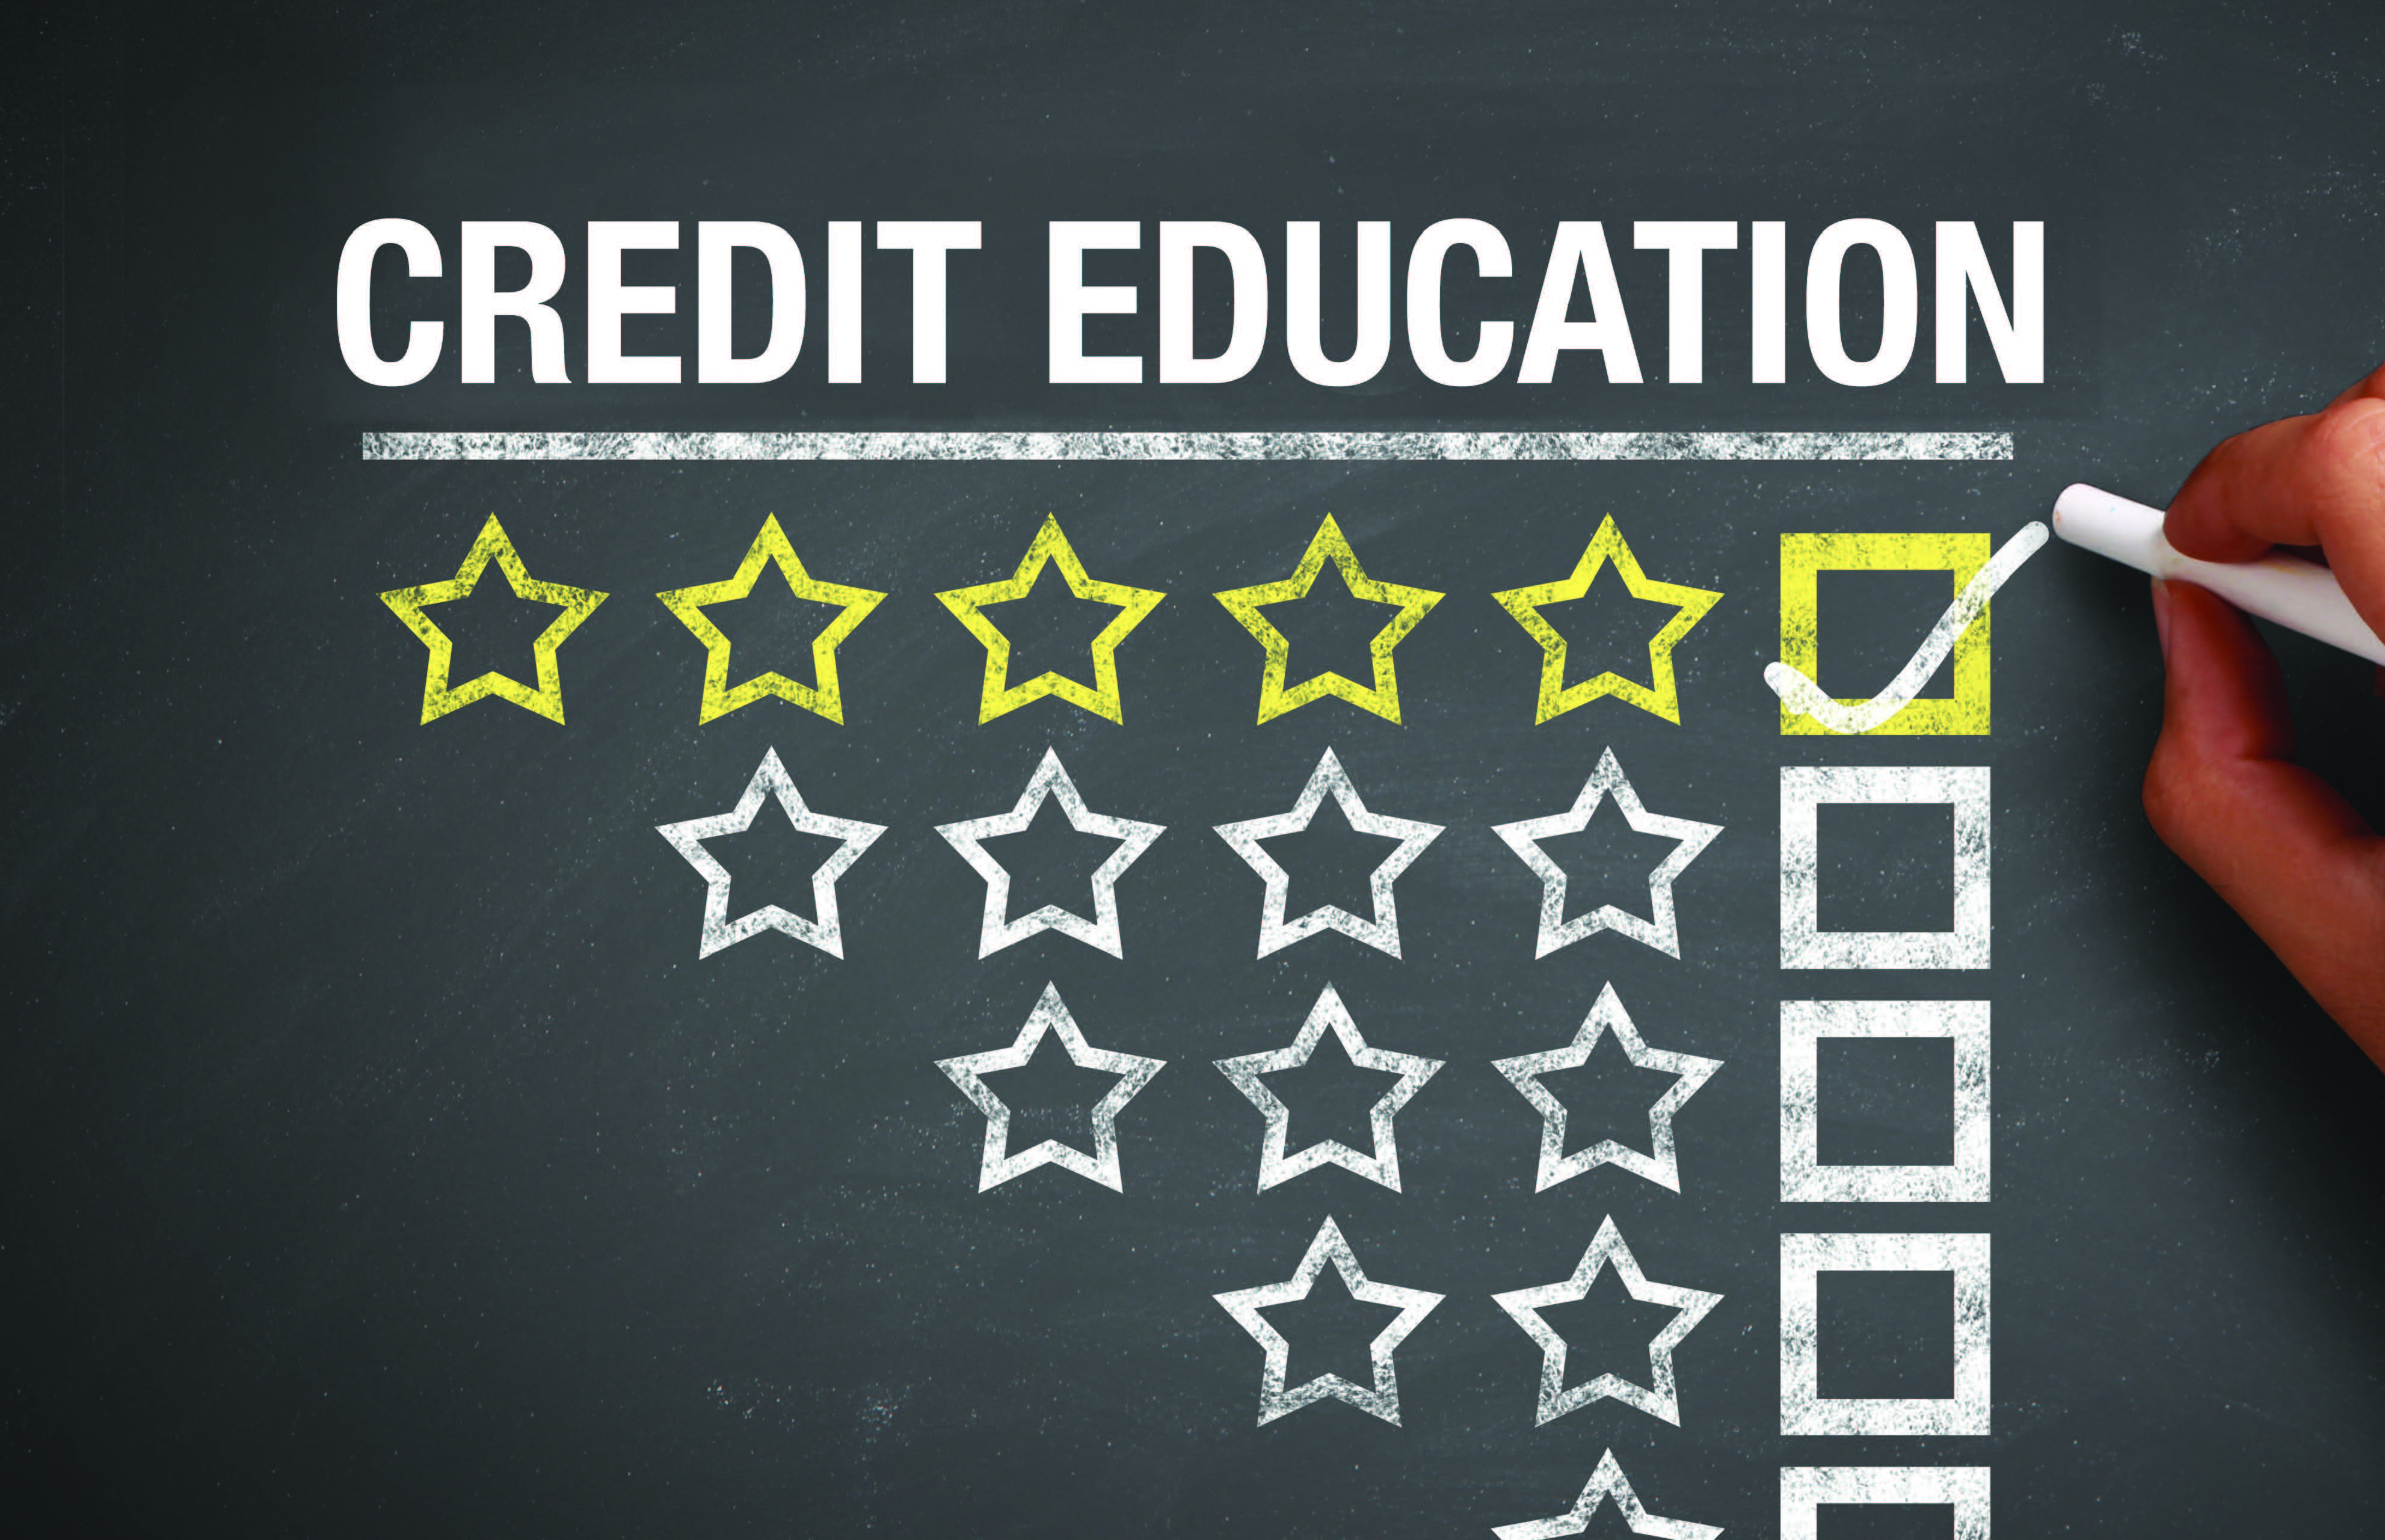 Credit Education